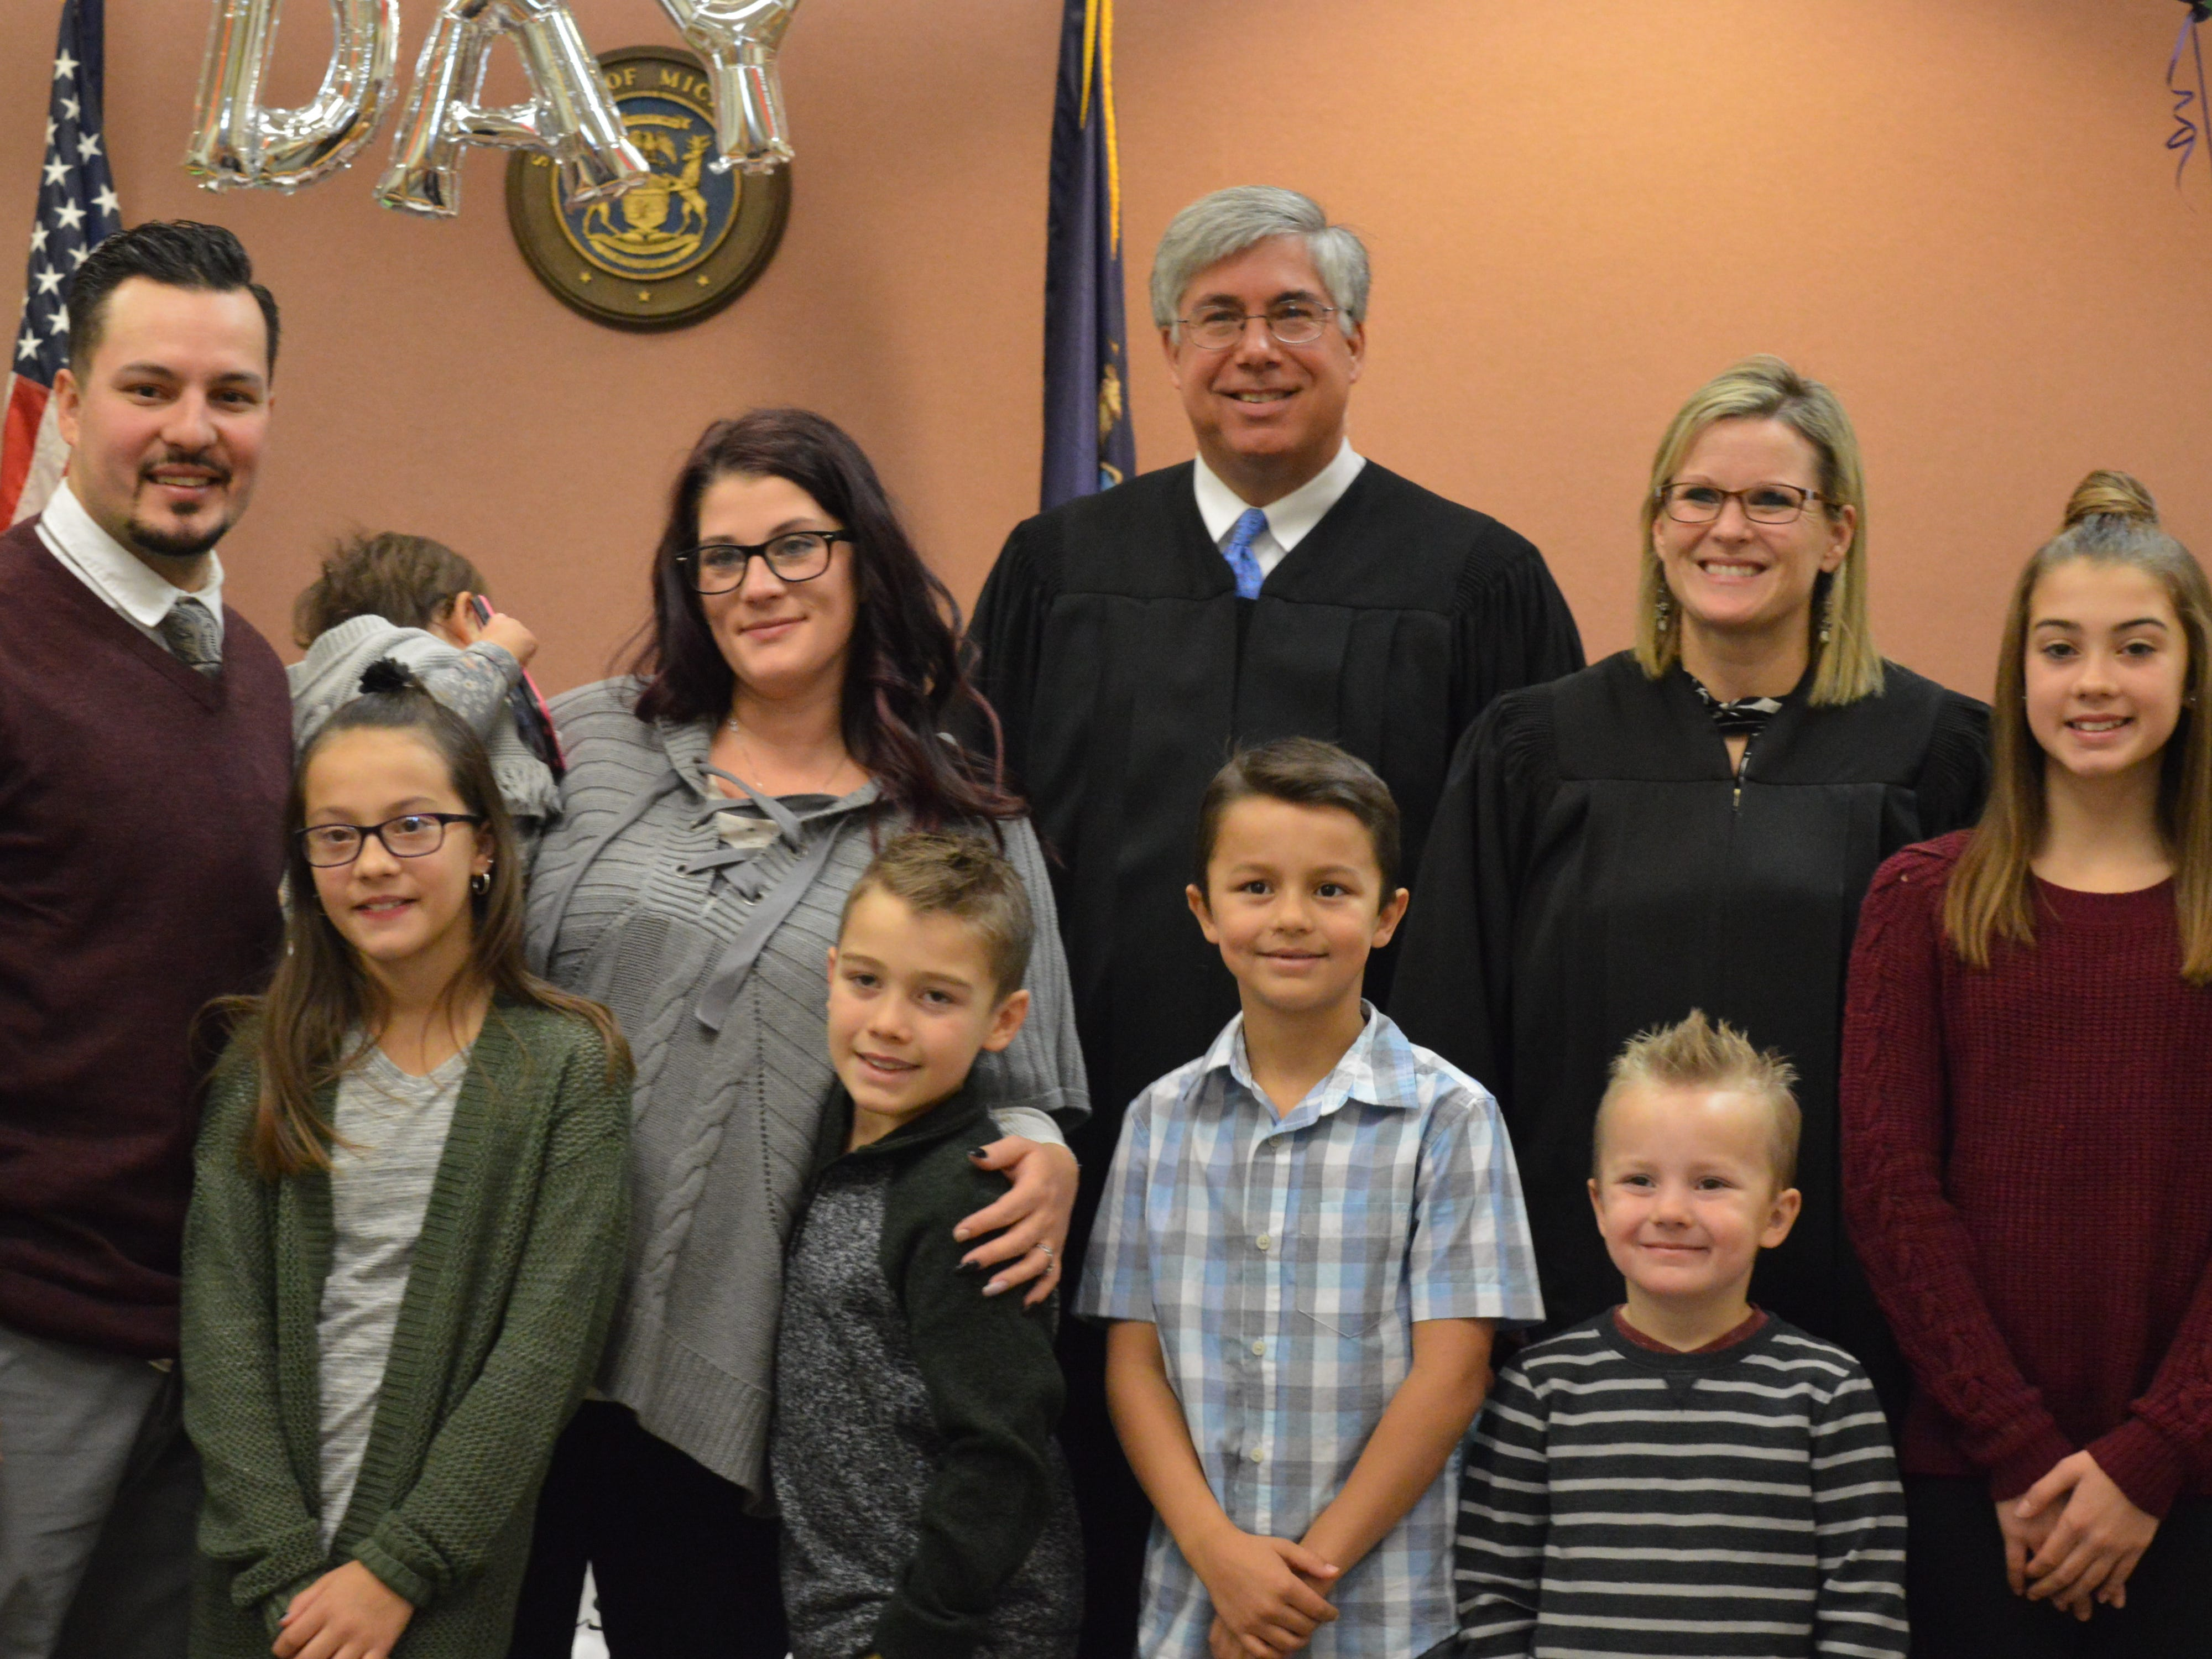 The Eilliot family poses after Rae-lynn and Caiden were legally adopted in Livingston County Chief Judge Miriam Cavanaugh's courtroom on Nov. 20, 2018.